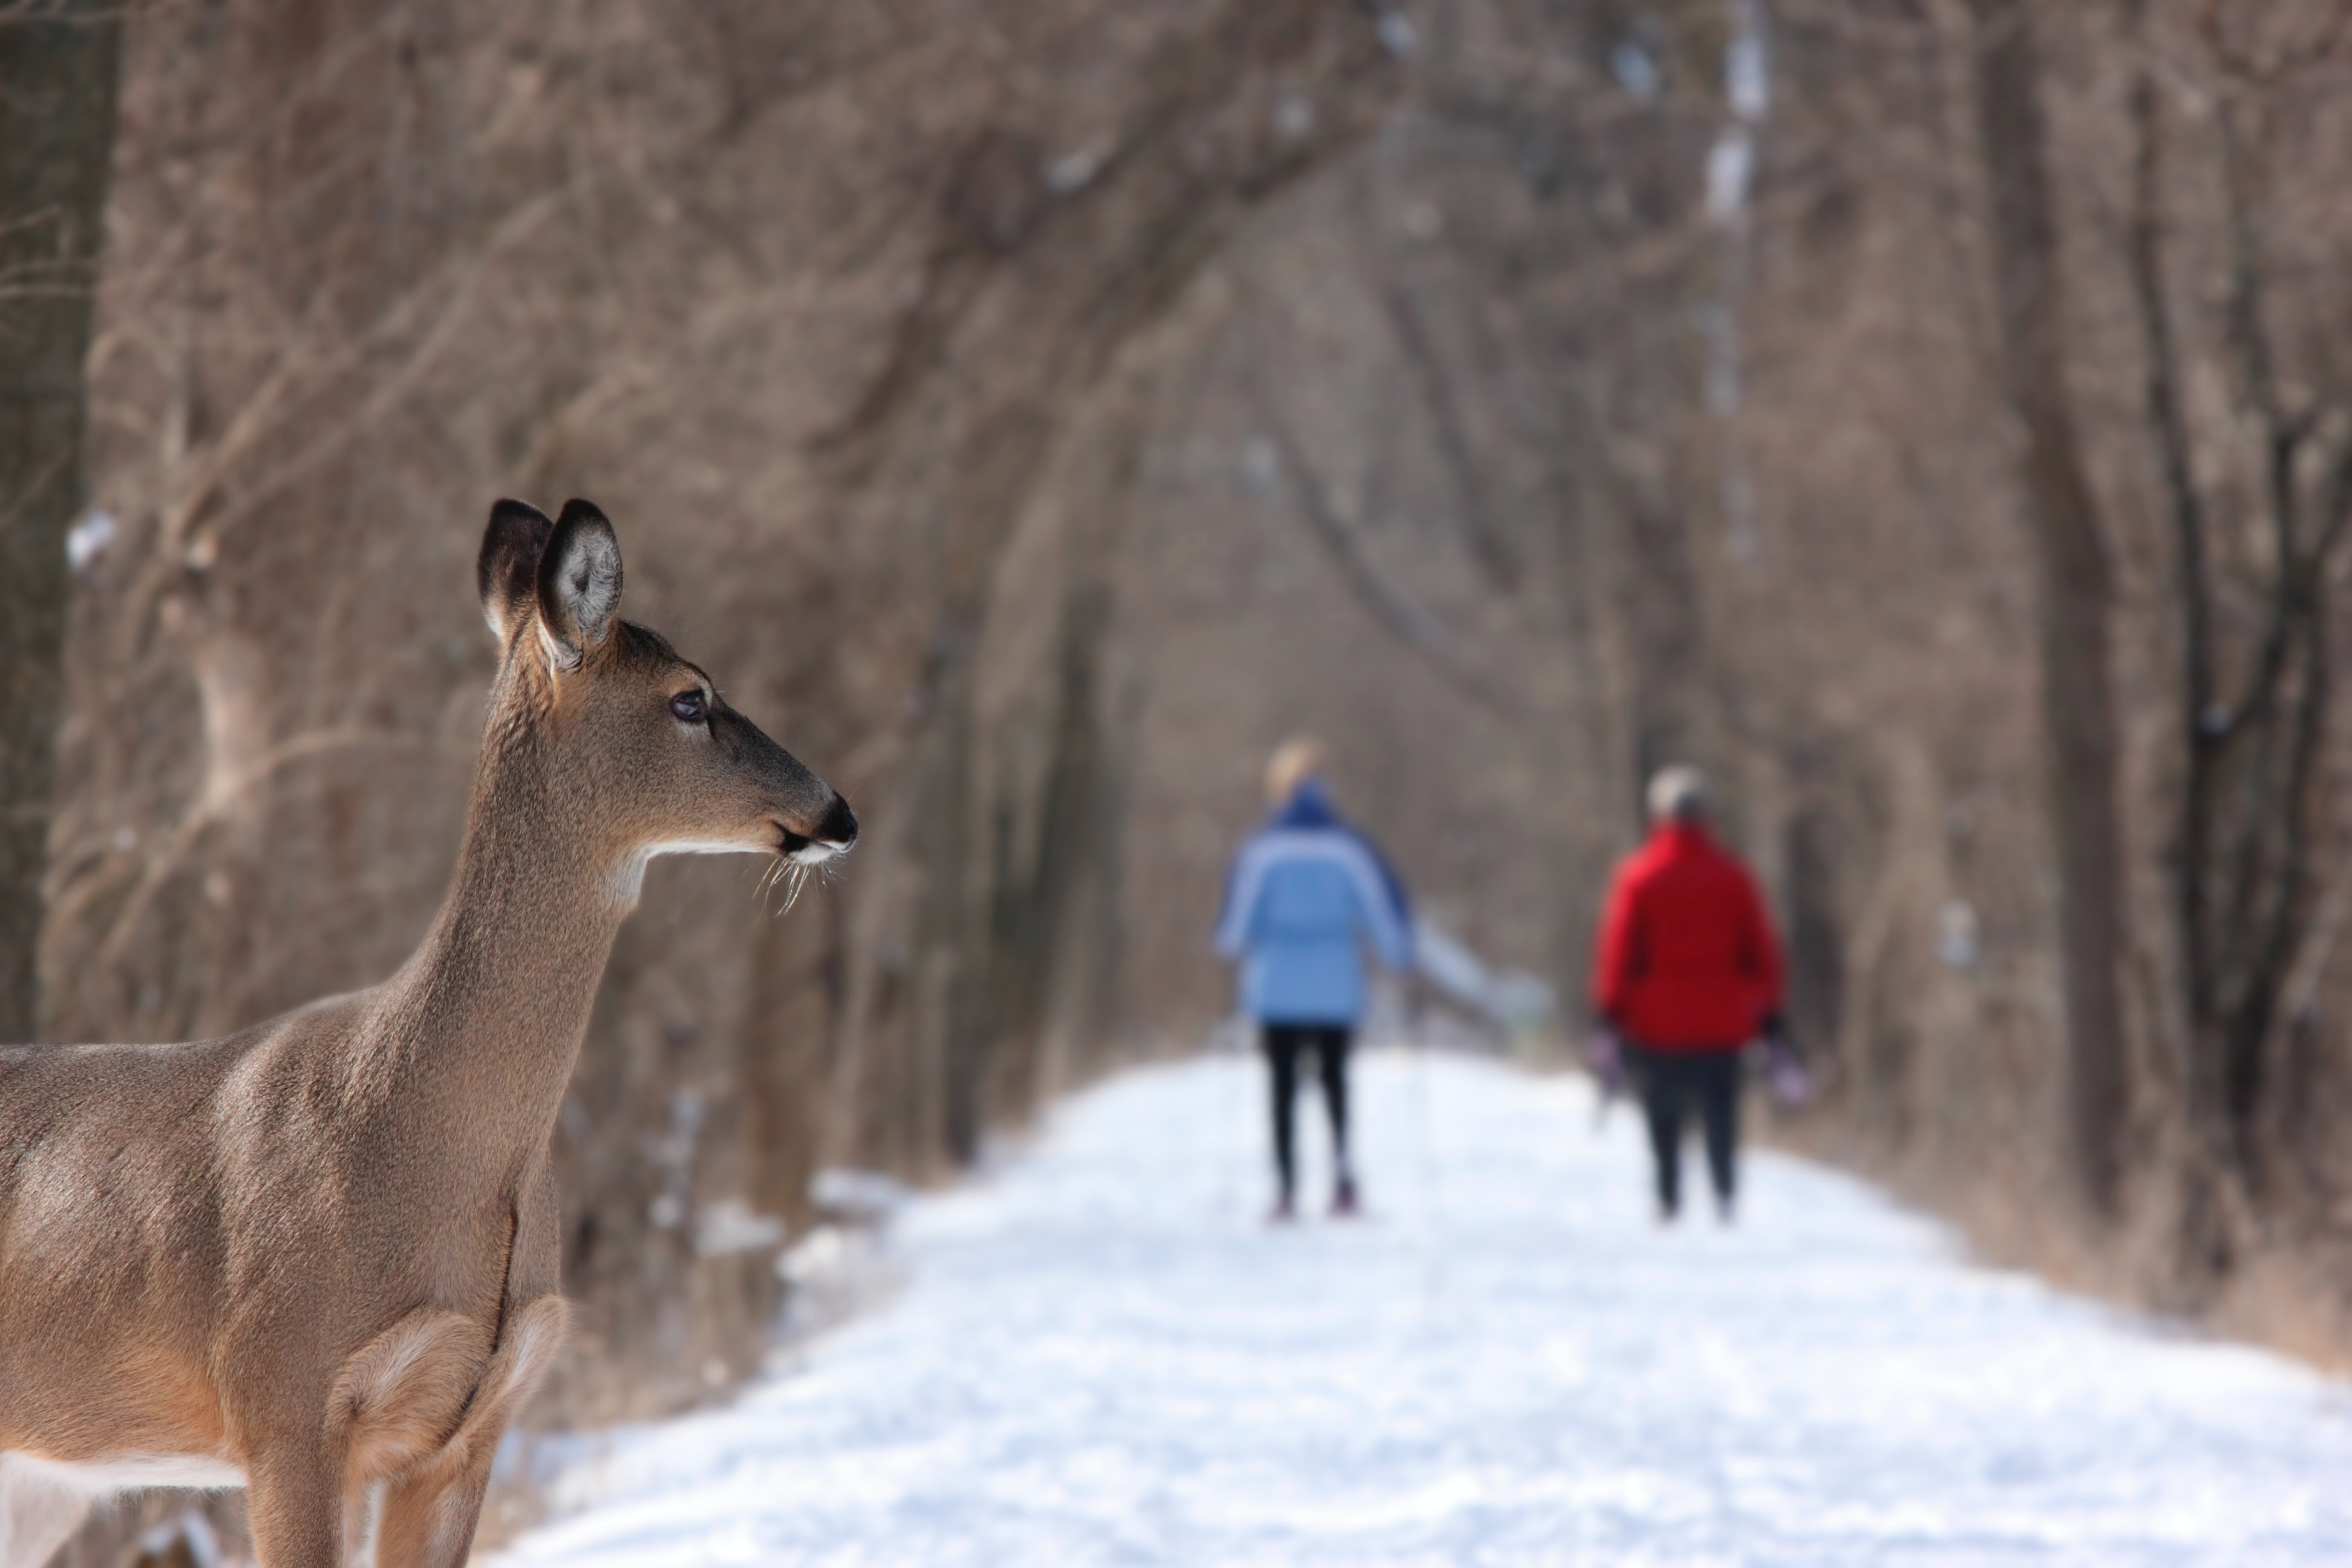 A deer in profile on a snow-covered path